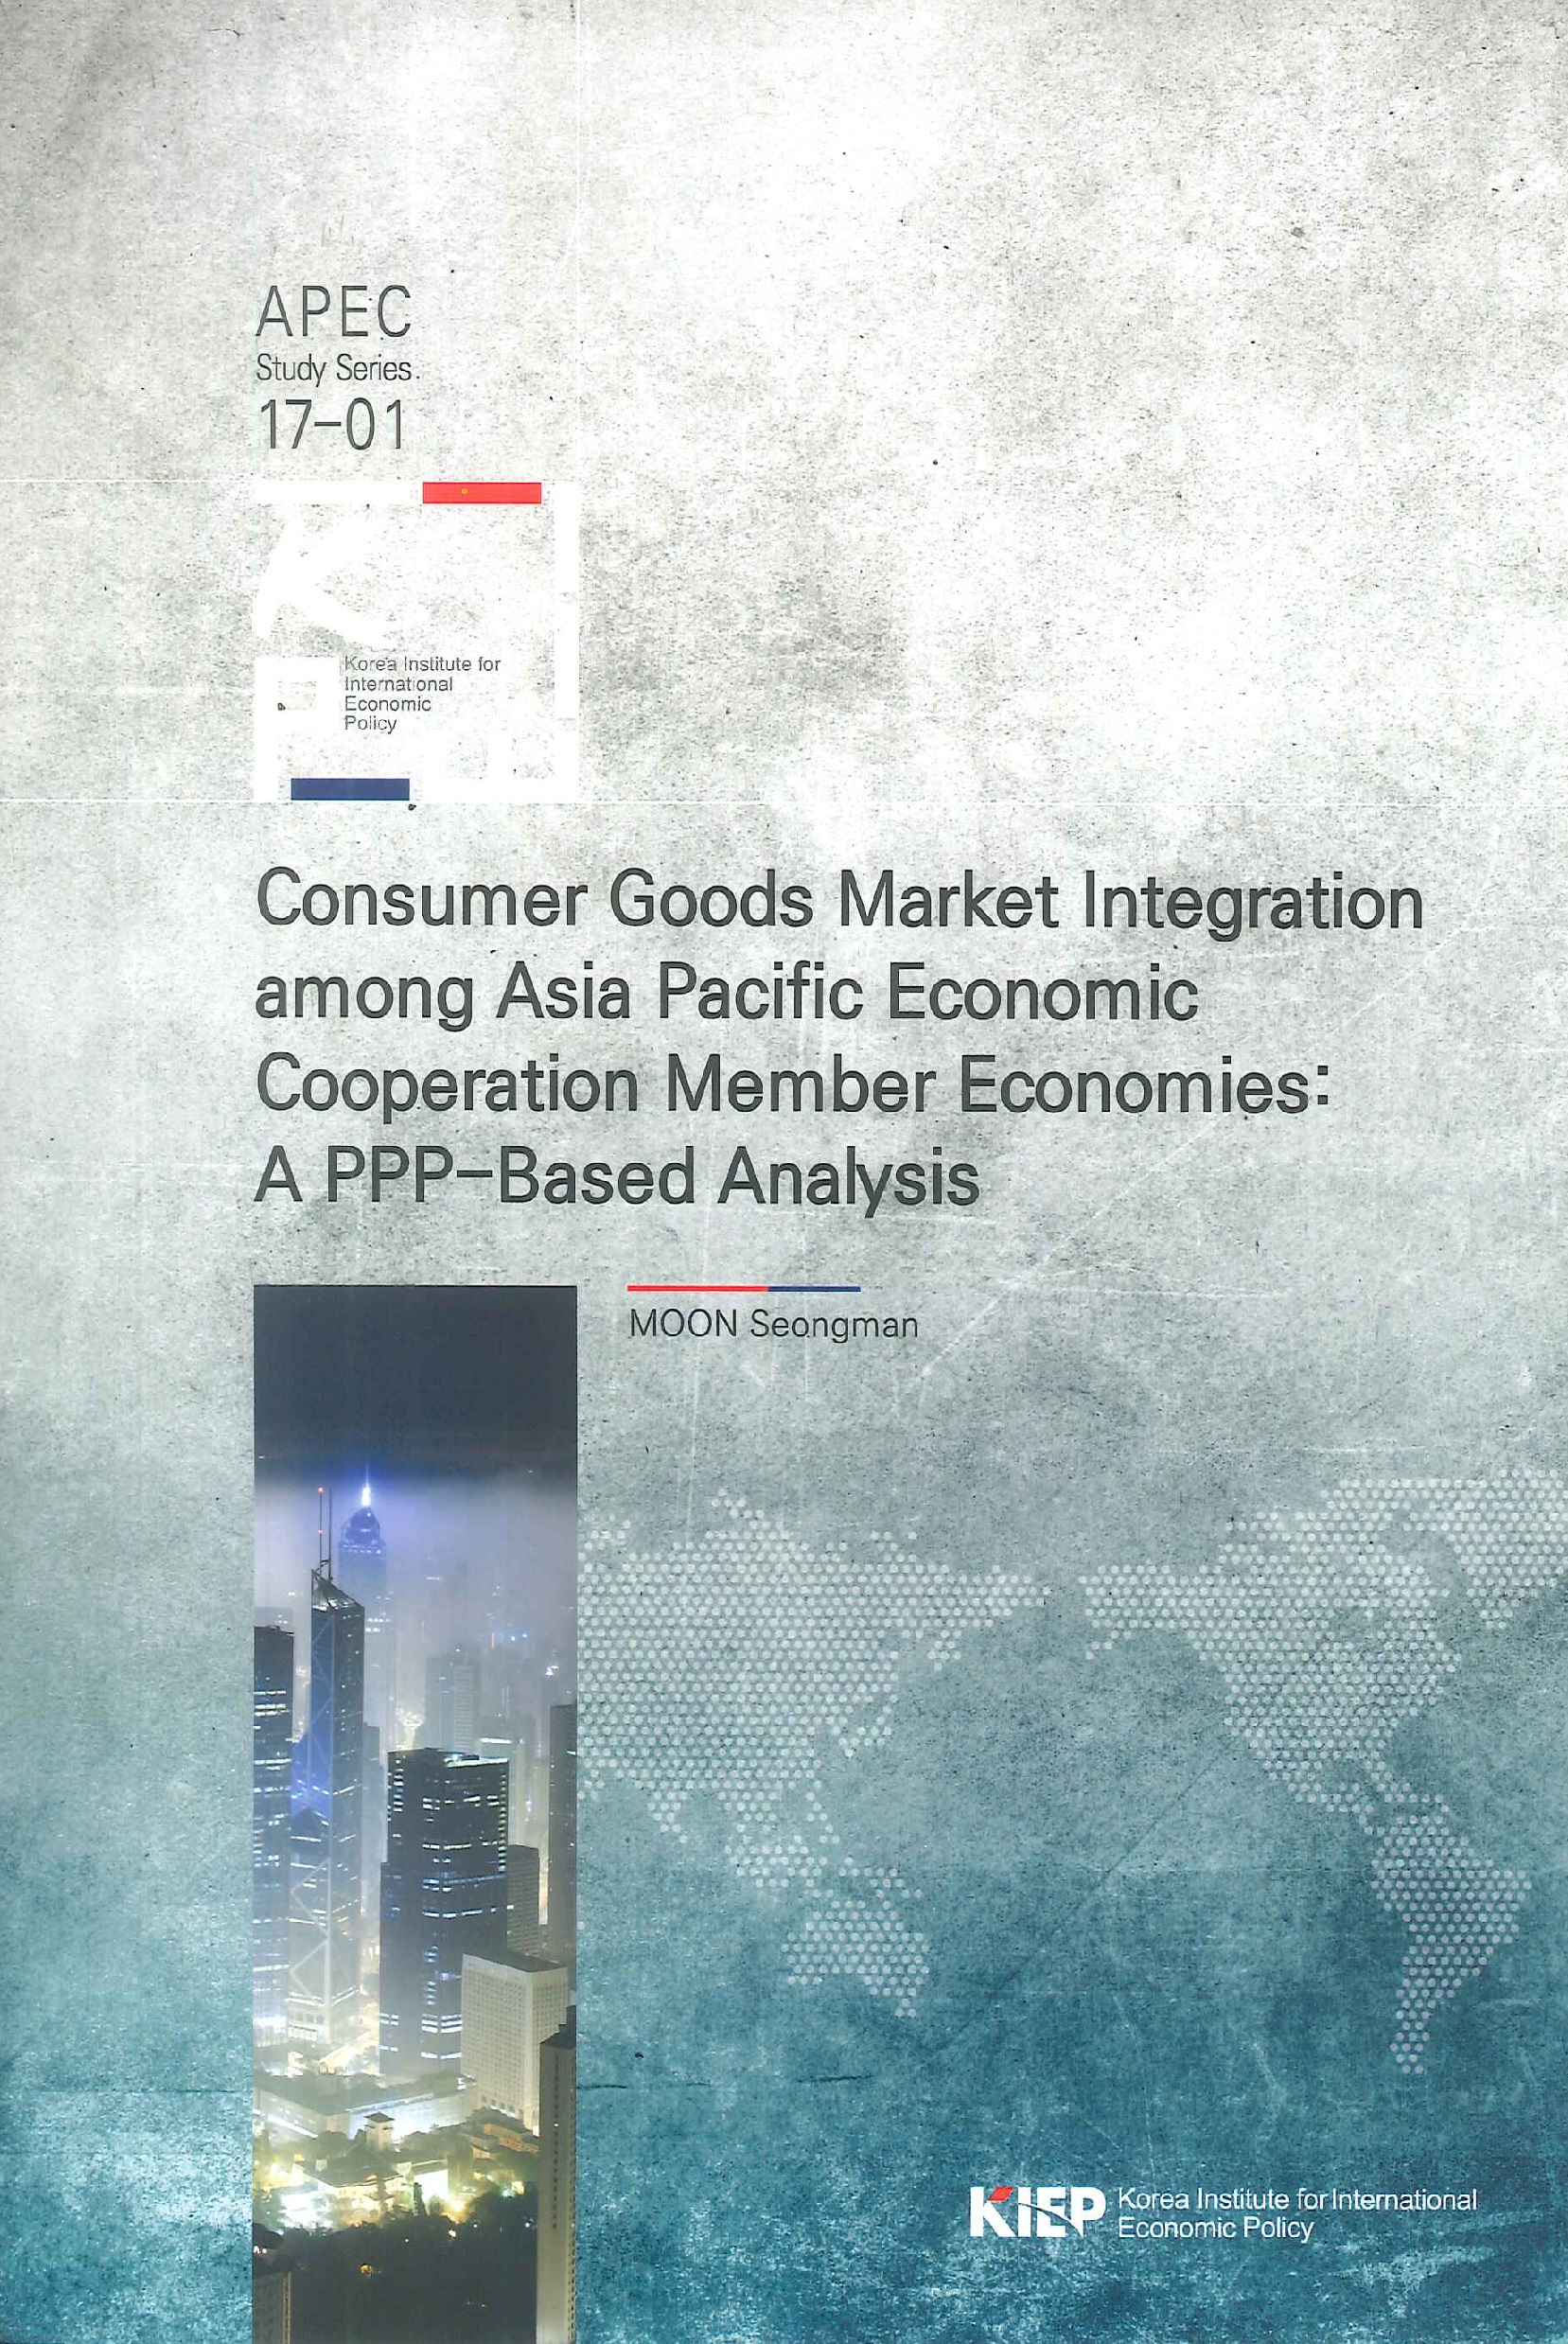 Consumer goods market integration among Asia Pacific Economic Cooperation member economies:a PPP-based analysis